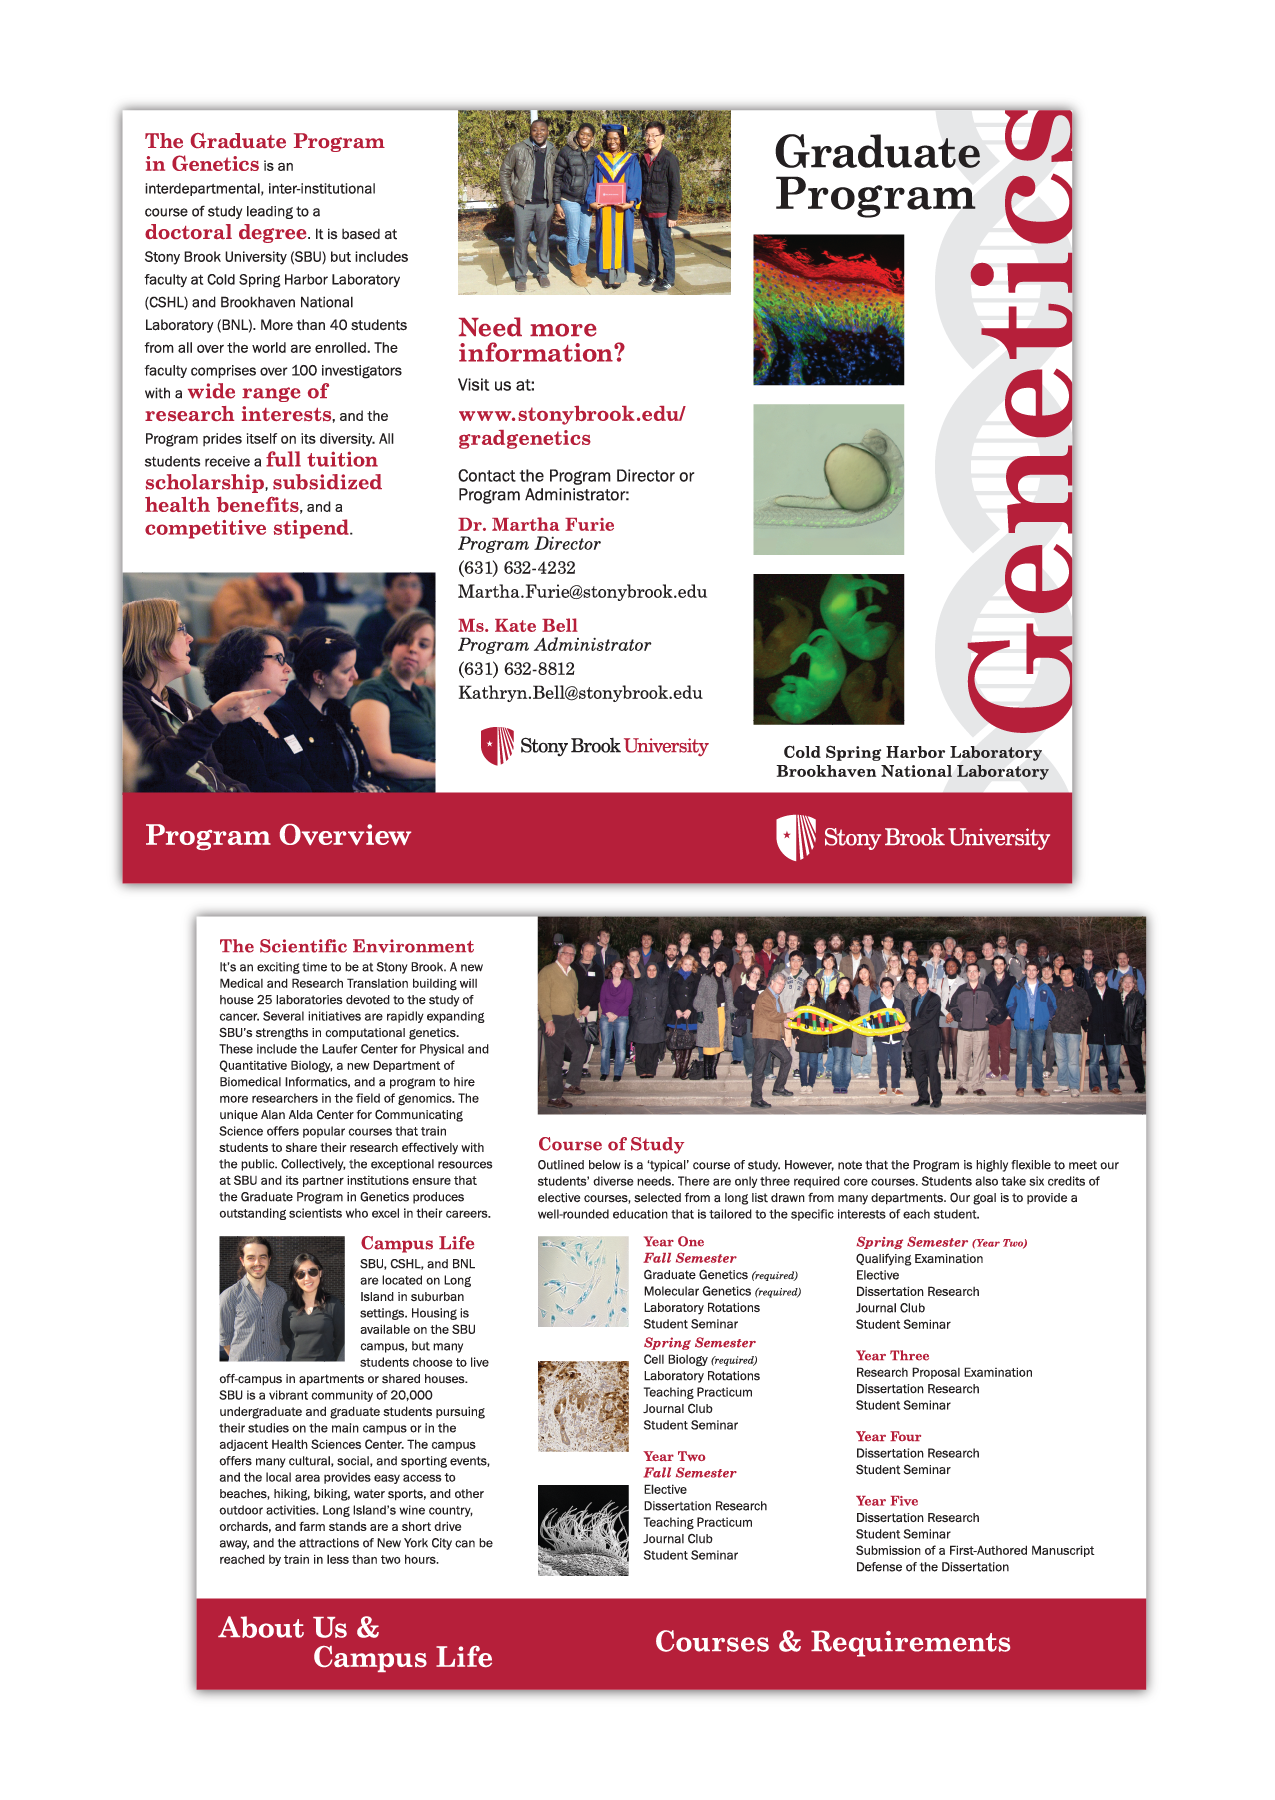 Stony Brook University, Graduate Genetics Program Brochure